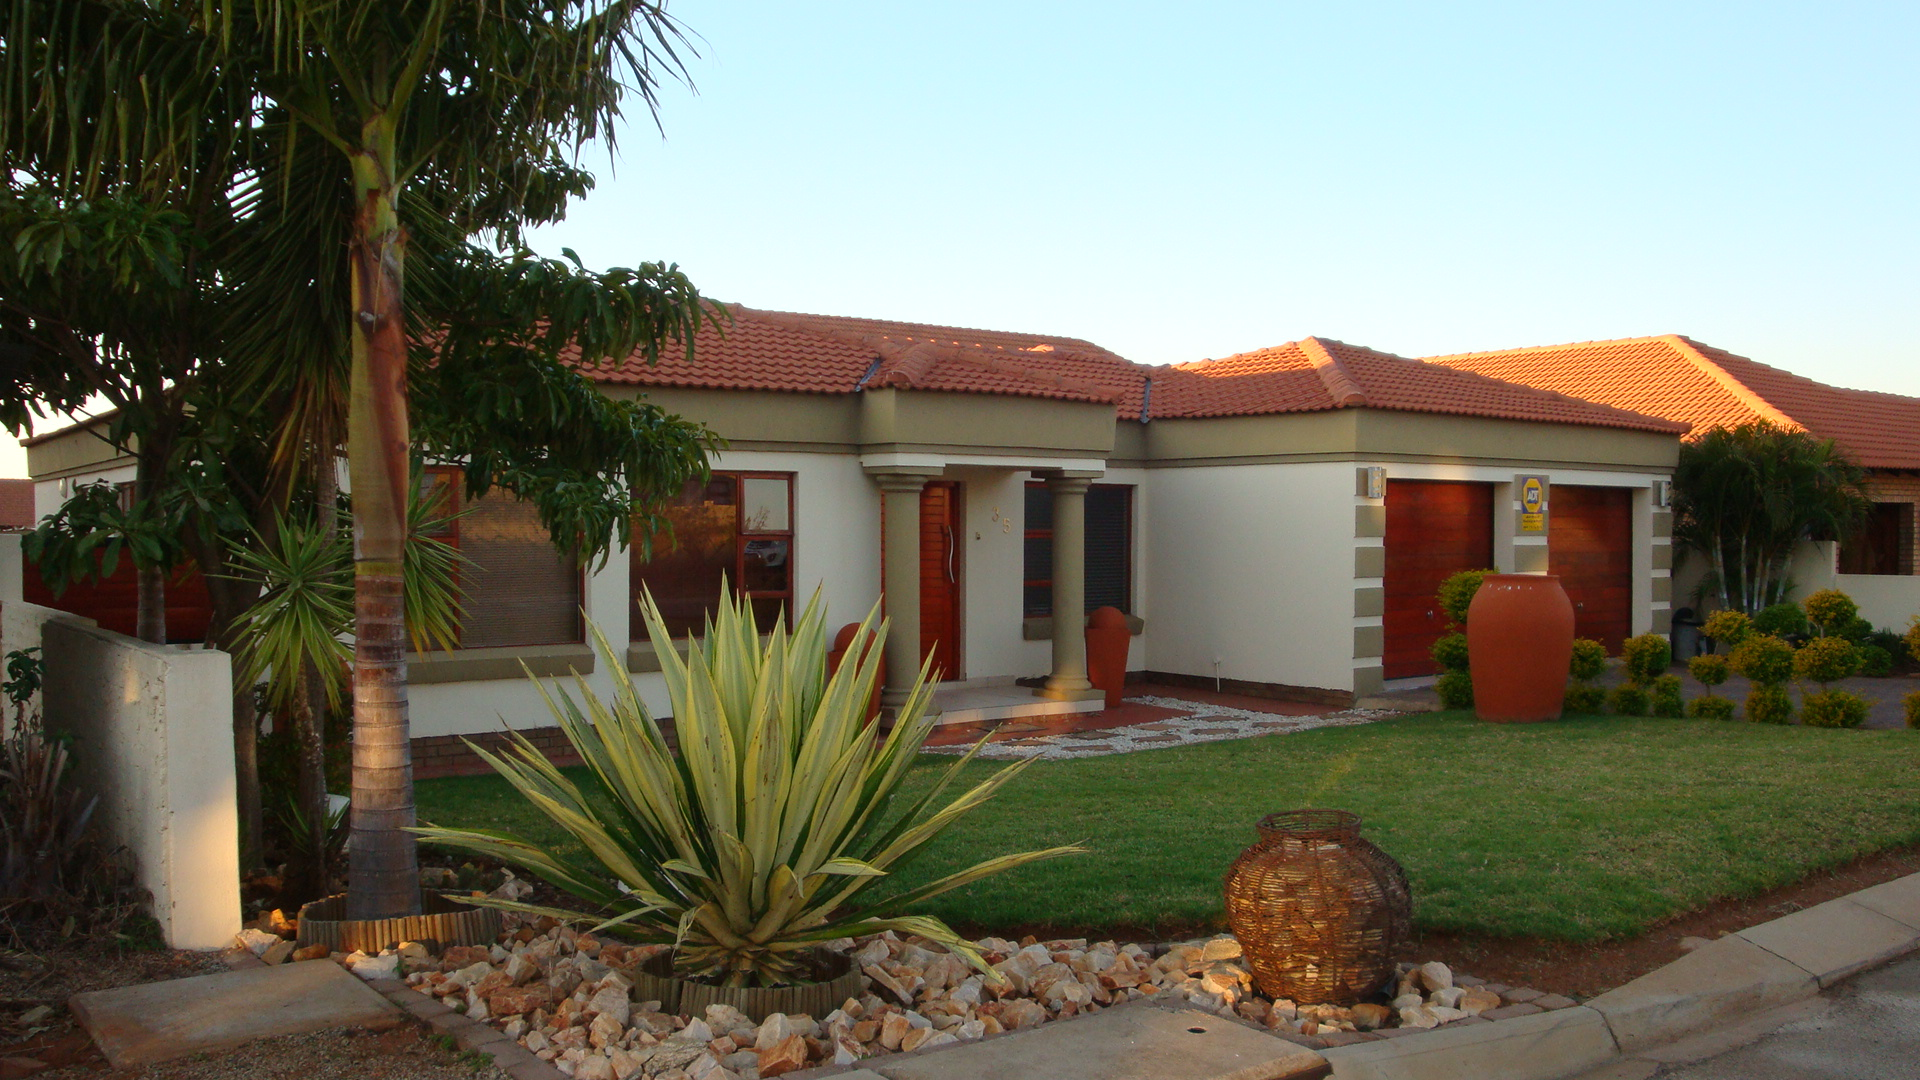 4 bedroom house for sale in polokwane for Beautiful 5 bedroom house plans with pictures